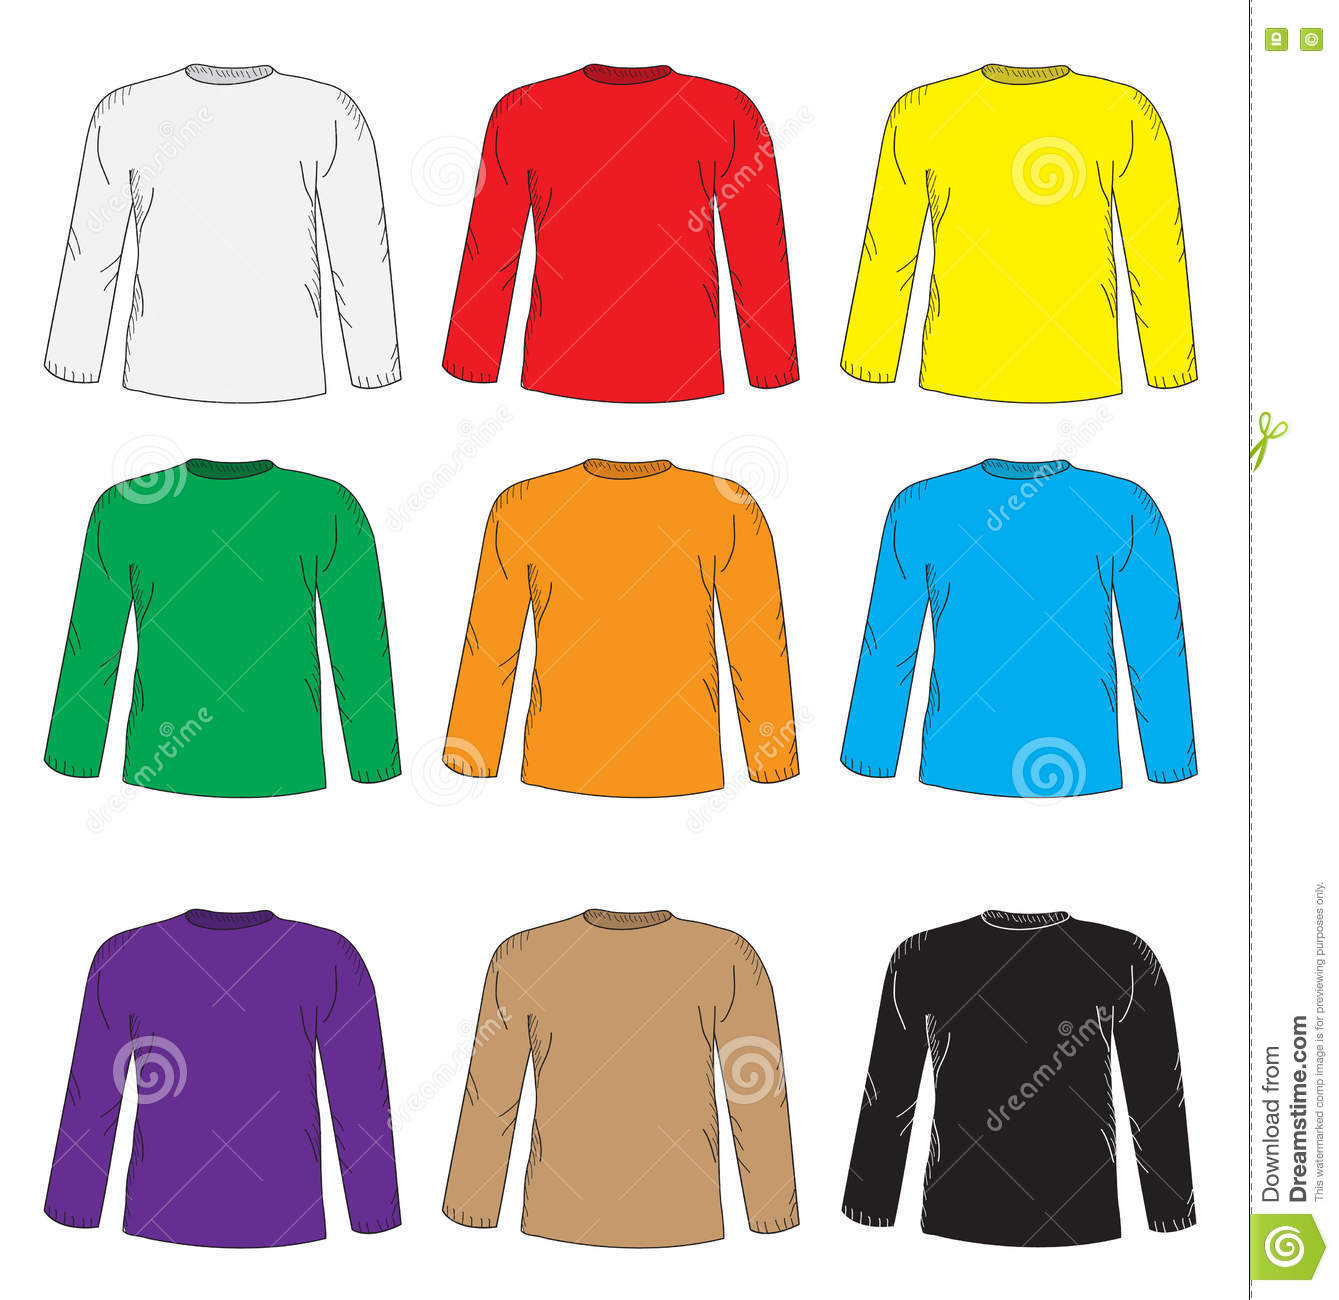 8775d2d3 Men's t shirts design template set. Multi-colored T-shirt with long sleeves.  Hand drawing style. mockup shirts. Vector illustration.